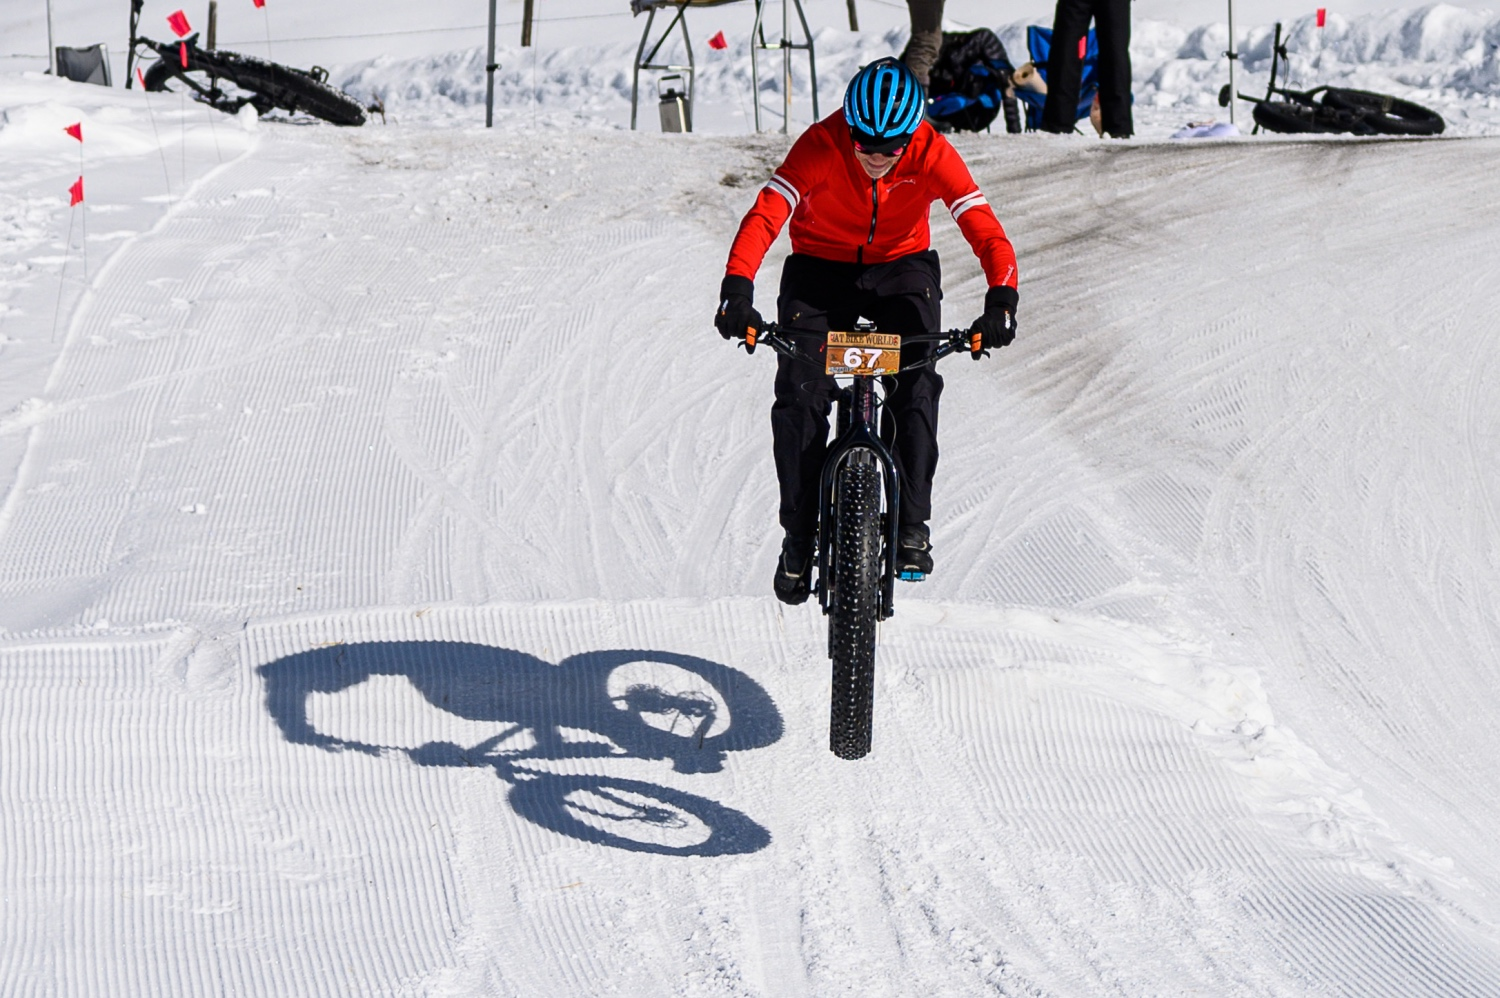 Even without front suspension, you can get a little rowdy on the Giant Yukon 1 Fat Bike. Photo by Robby Lloyd/Lucid Images